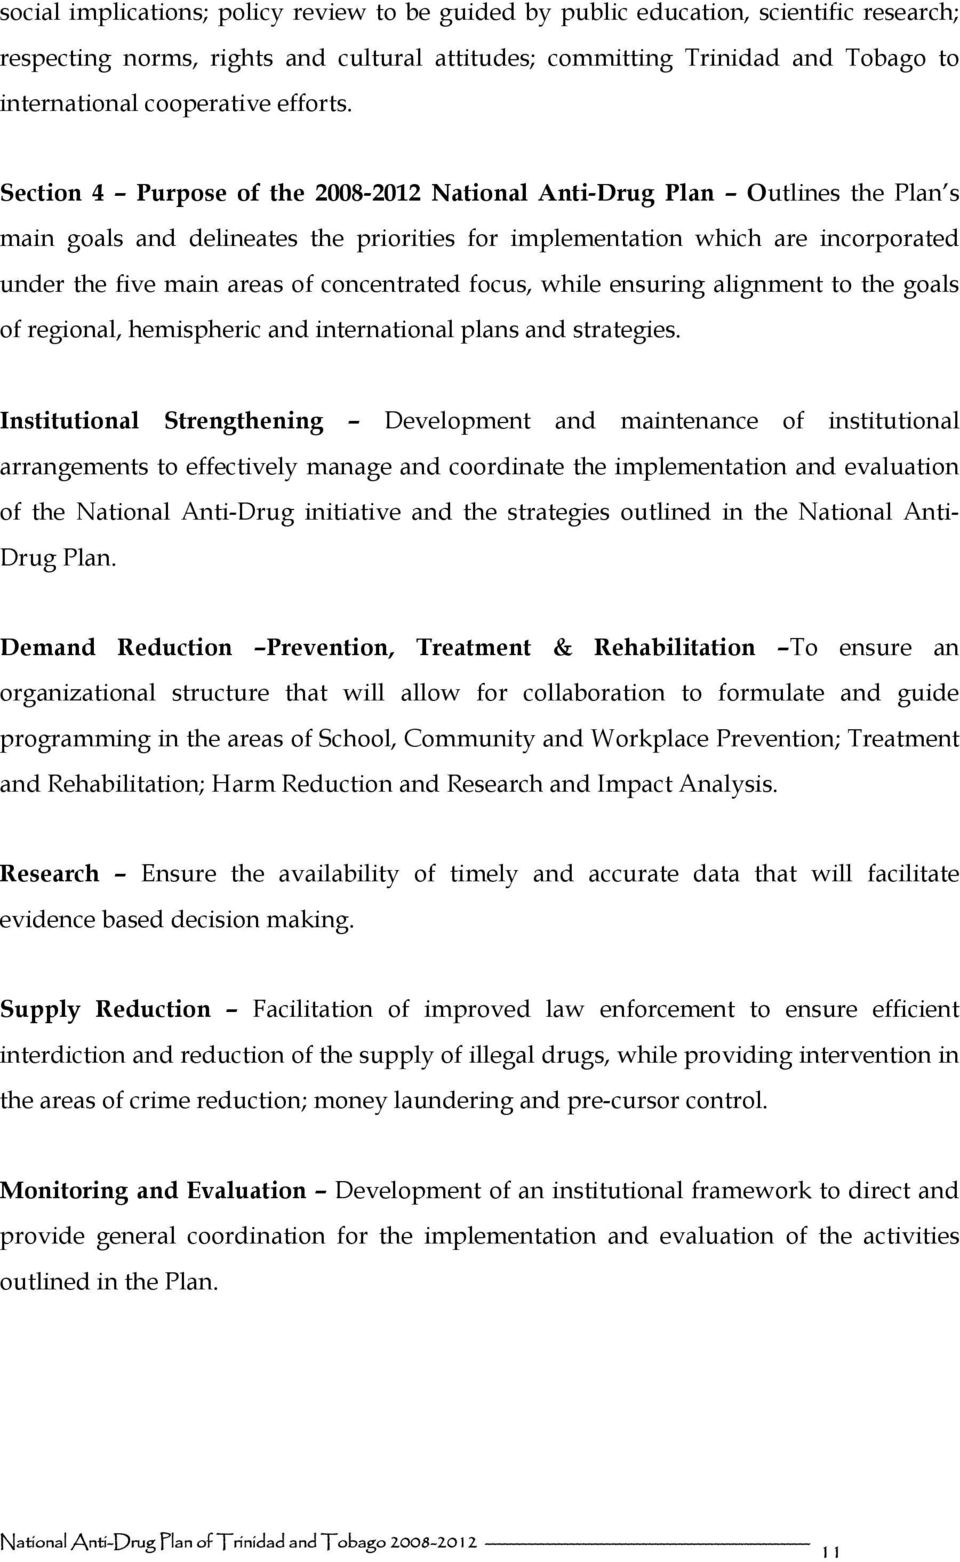 Section 4 Purpose of the 2008-2012 National Anti-Drug Plan Outlines the Plan s main goals and delineates the priorities for implementation which are incorporated under the five main areas of